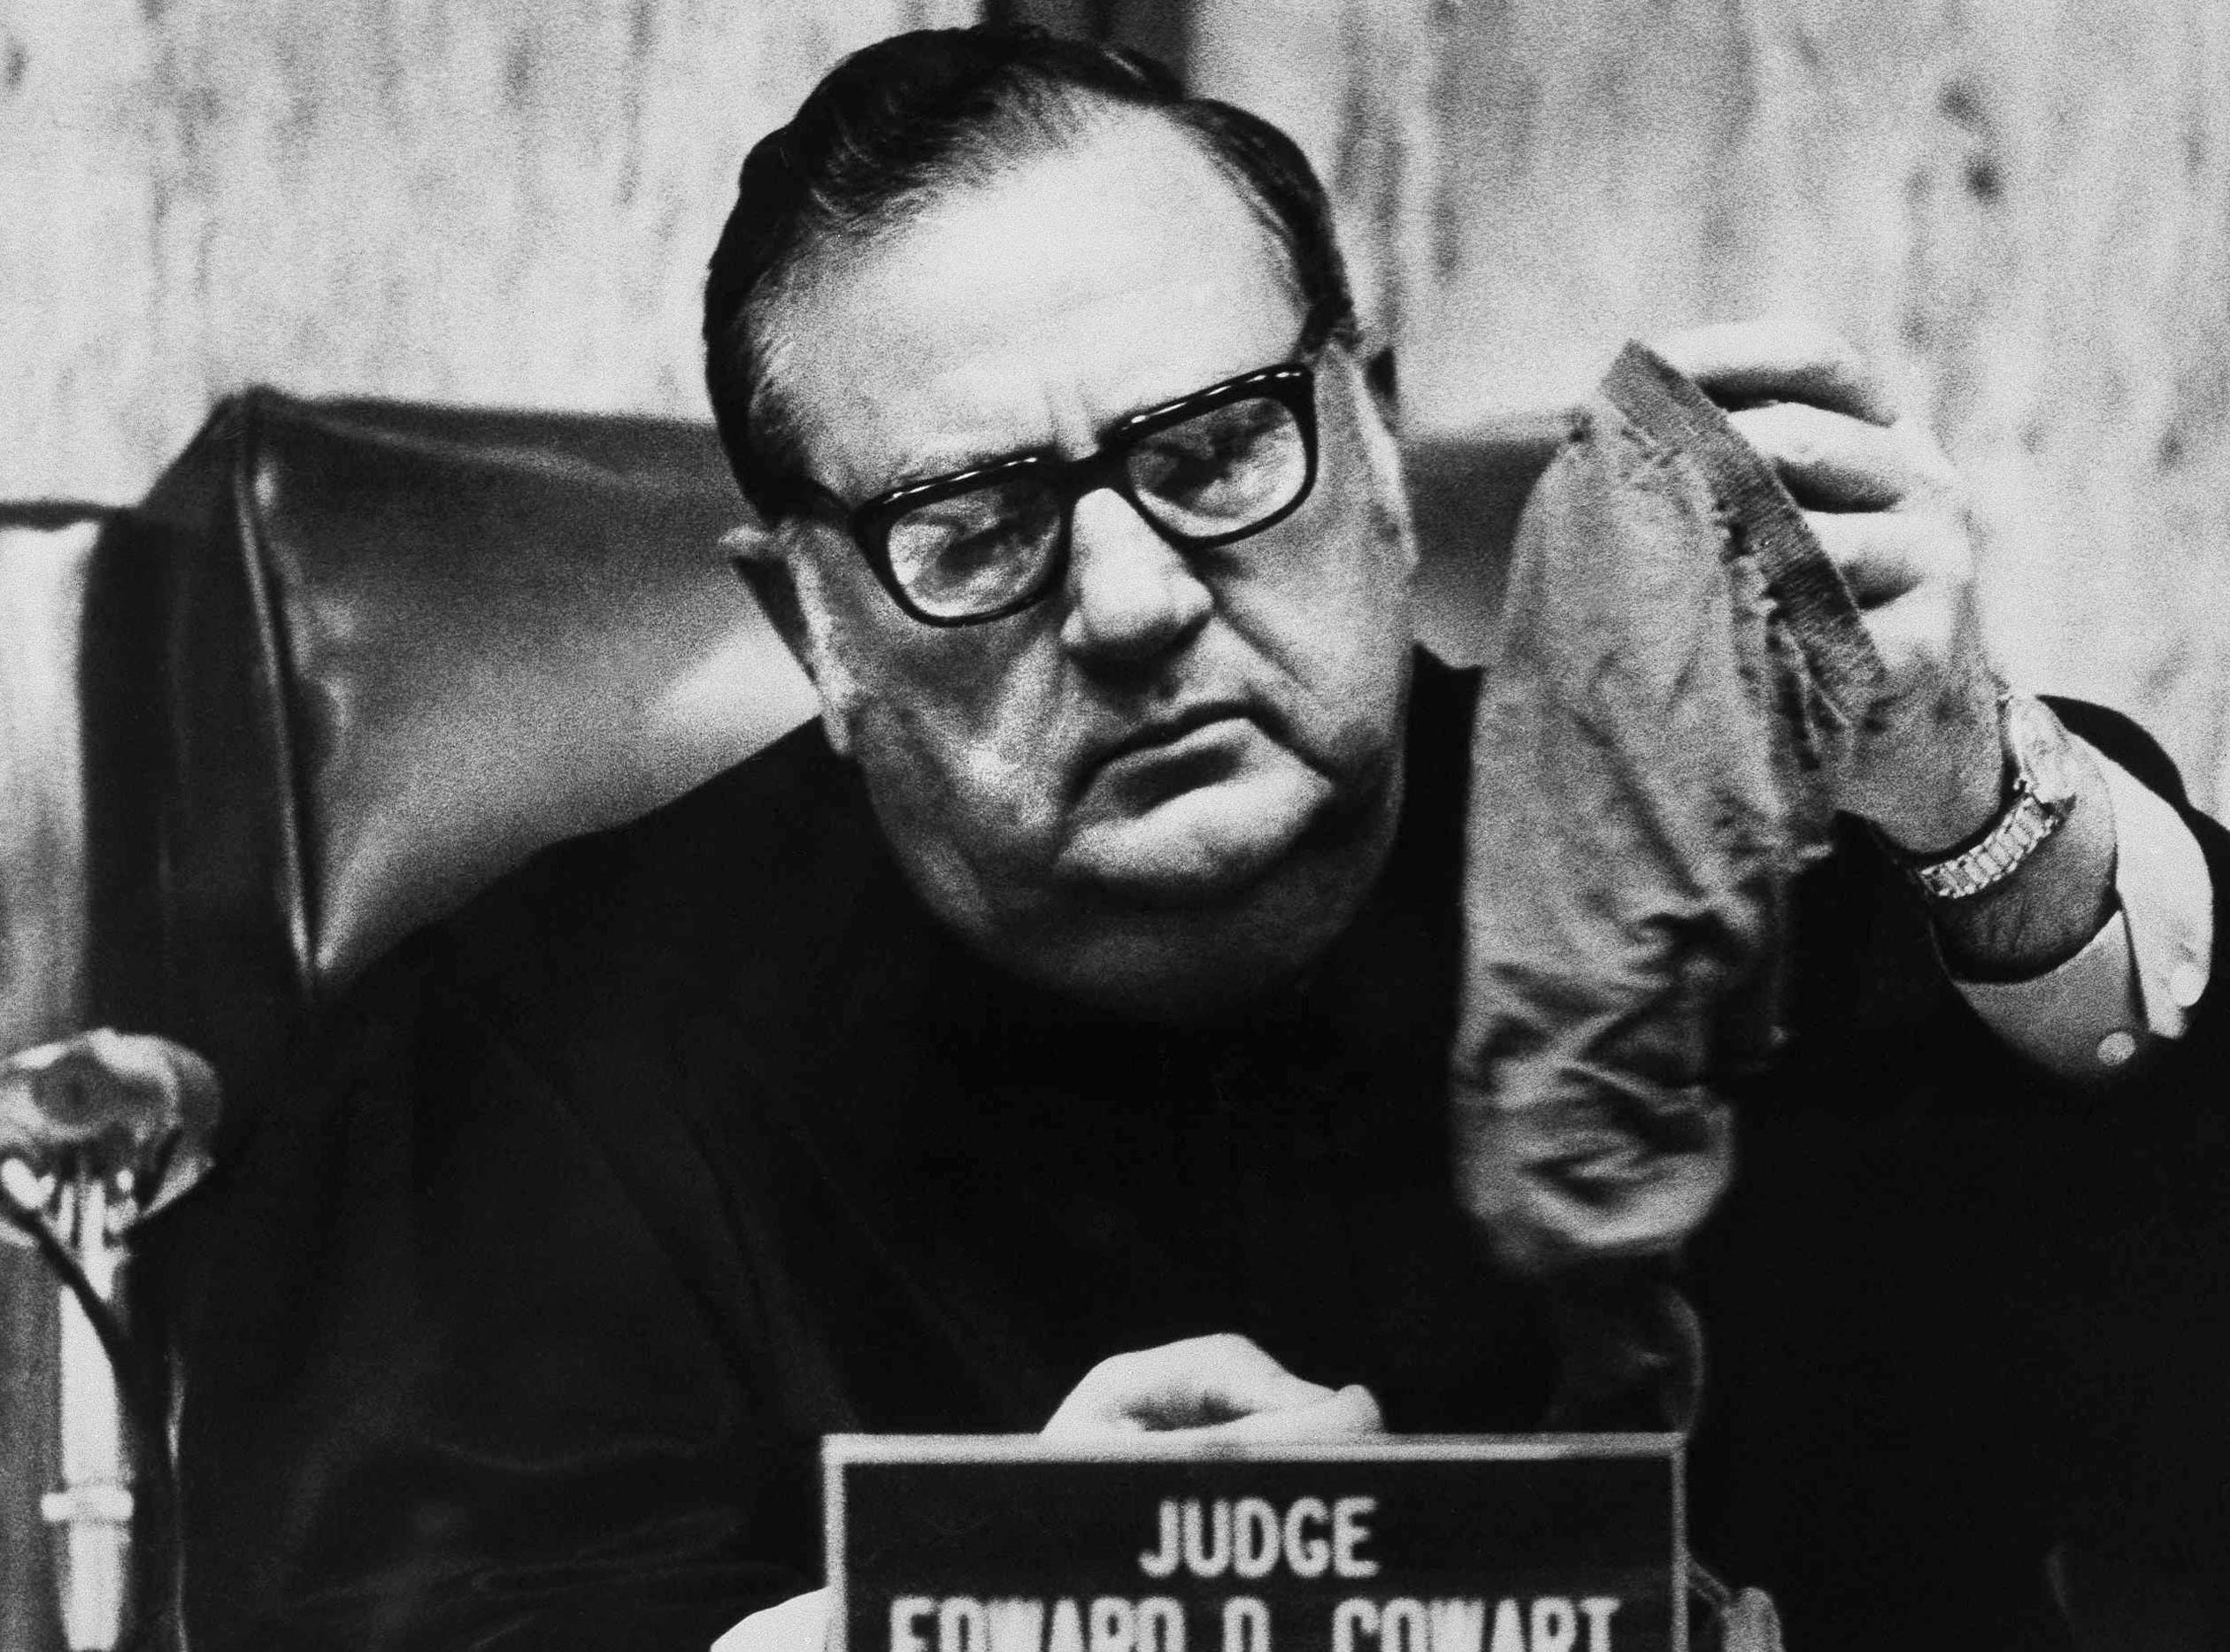 Trial Judge Edward Cowart eyes a pair of pantyhose, July 13, 1979, that the Salt Lake City police took from Theodore Bundy's automobile upon his arrest there in 1975.